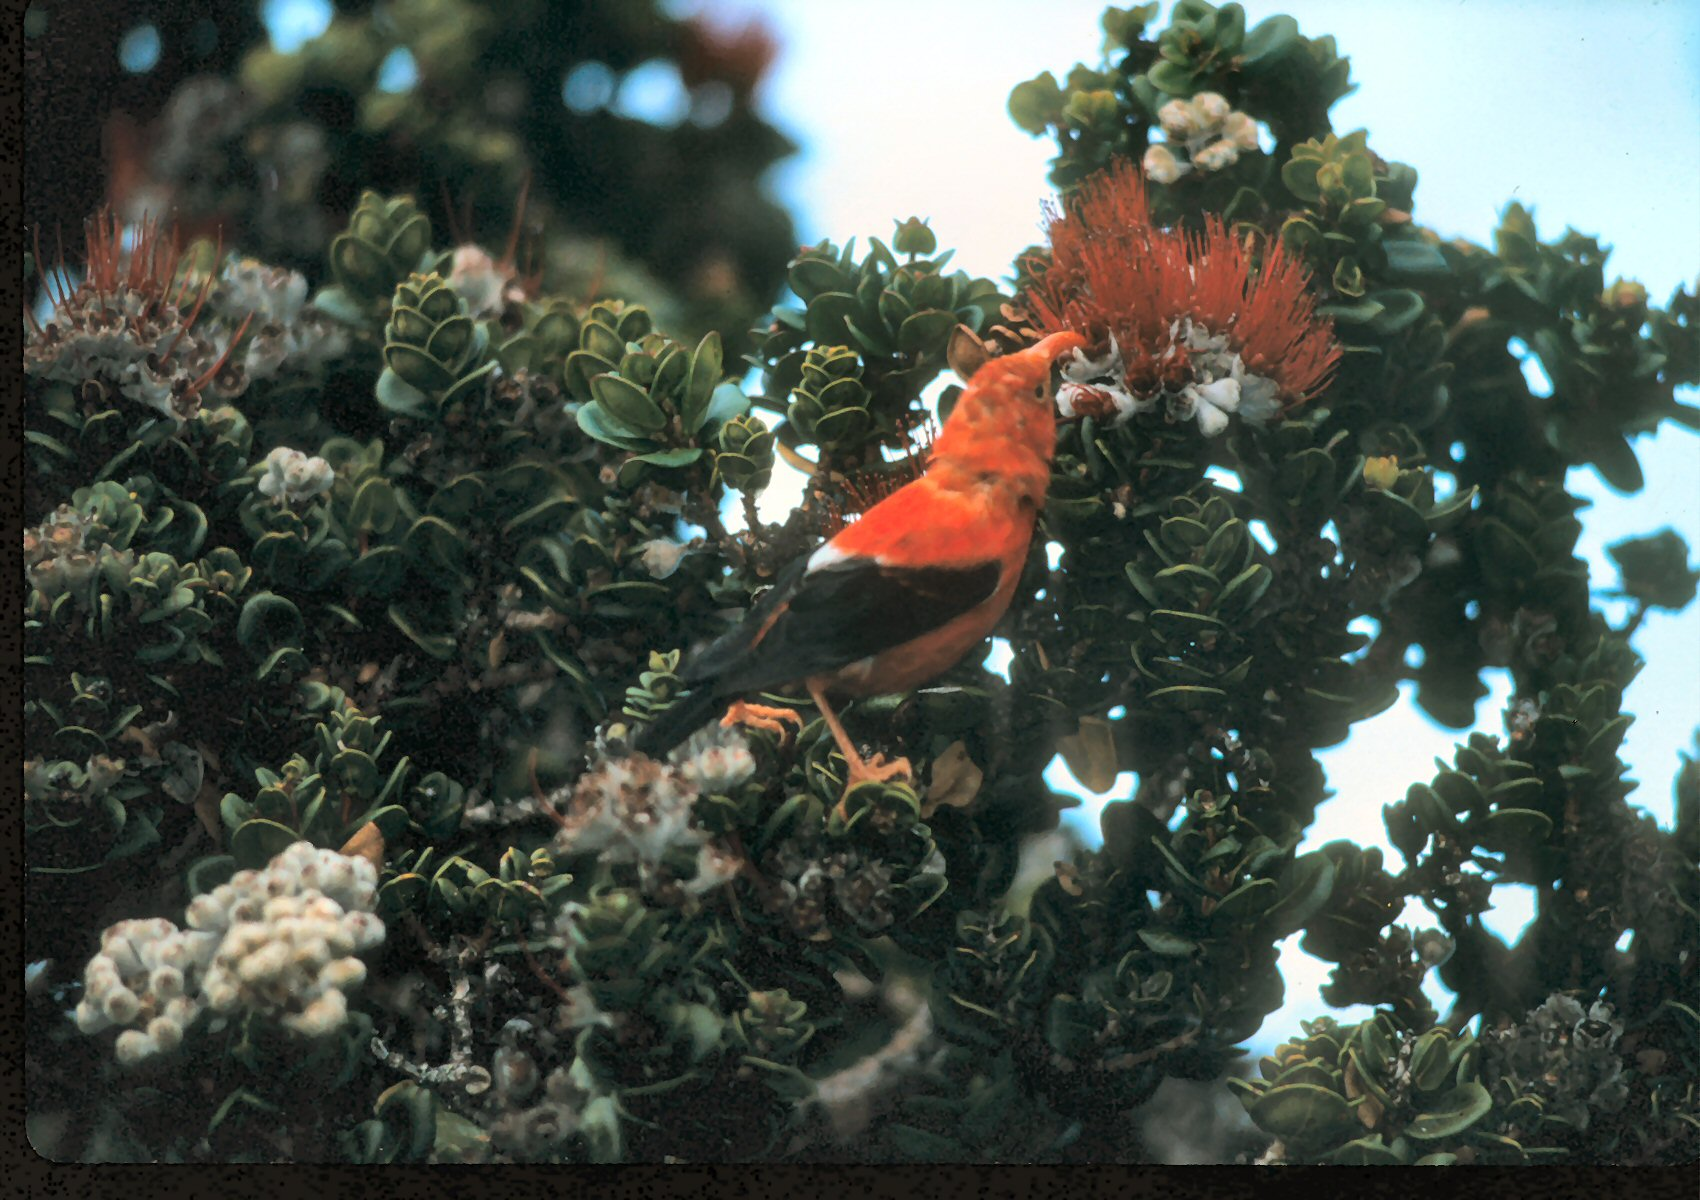 Lawsuit Aims to Protect ʻIʻiwi, Threatened Iconic Hawaiian Forest Bird